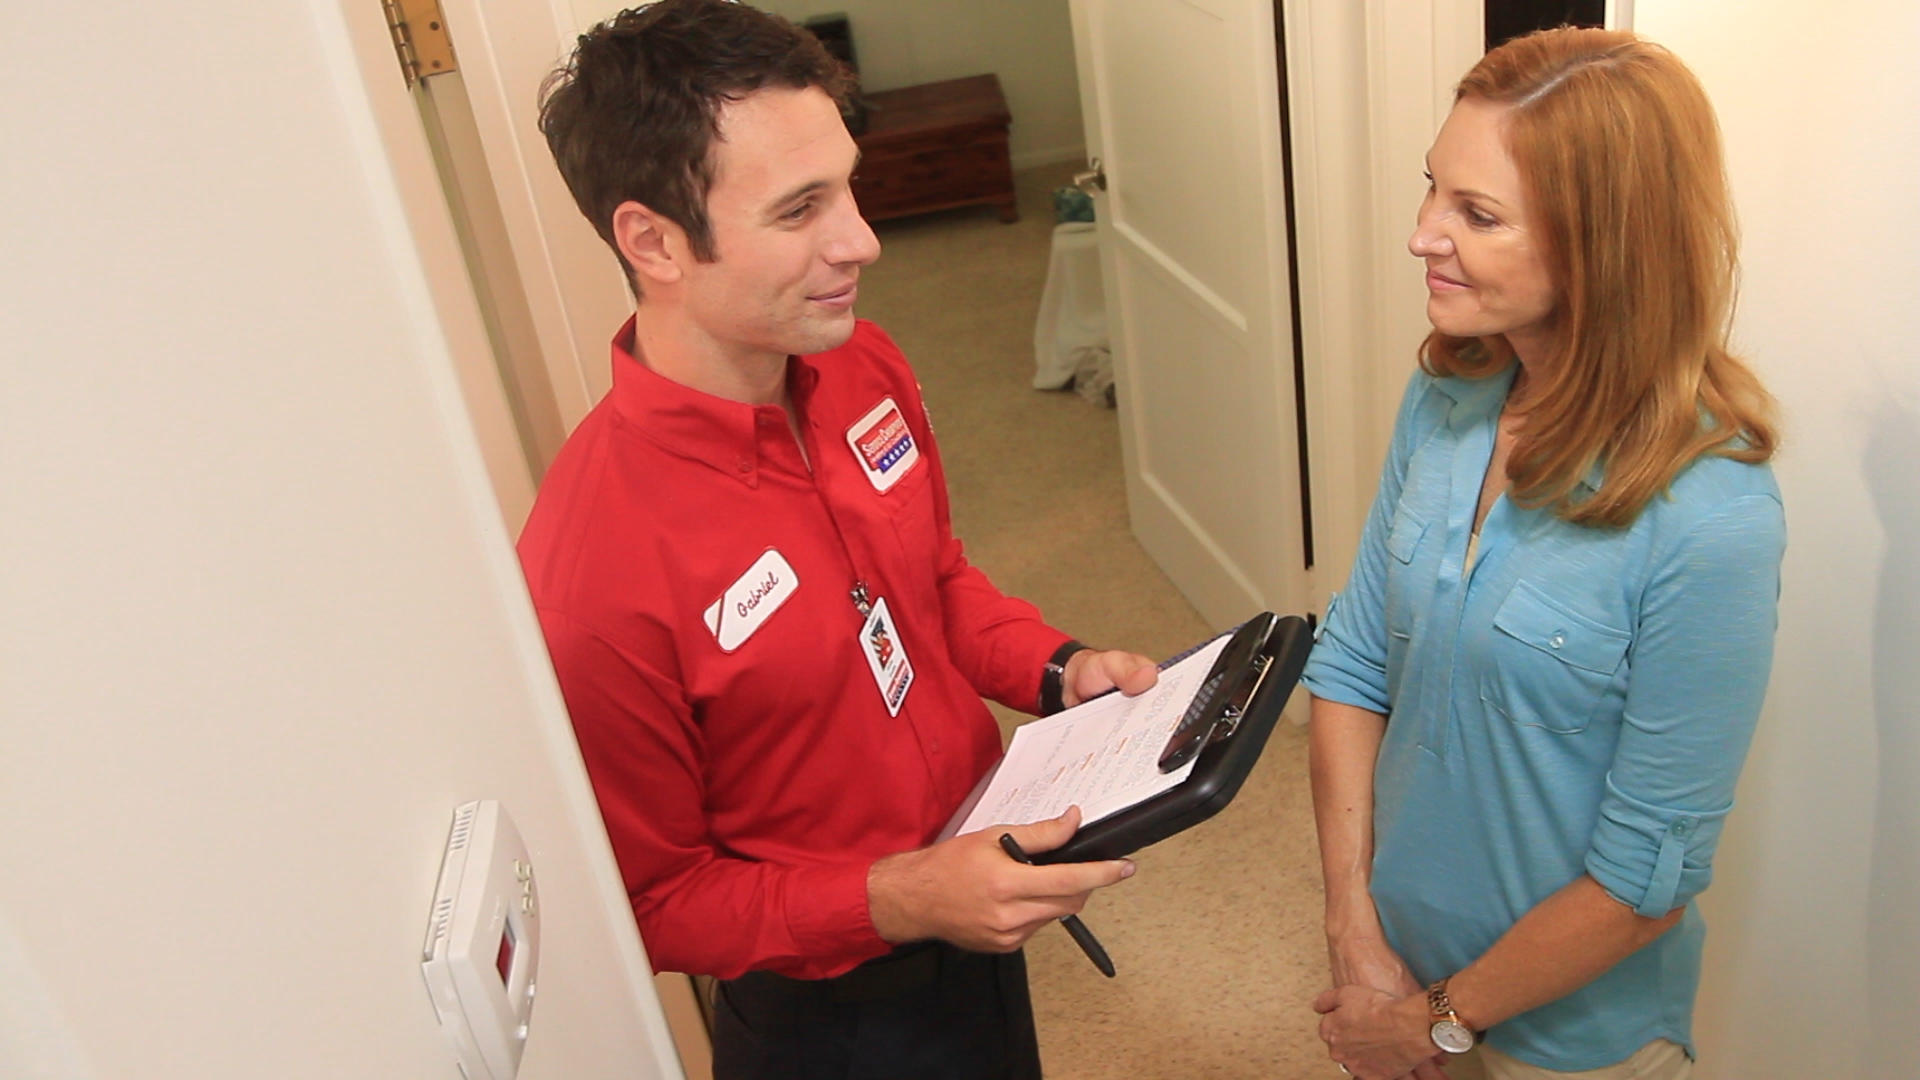 Service Champions Heating & Air Conditioning